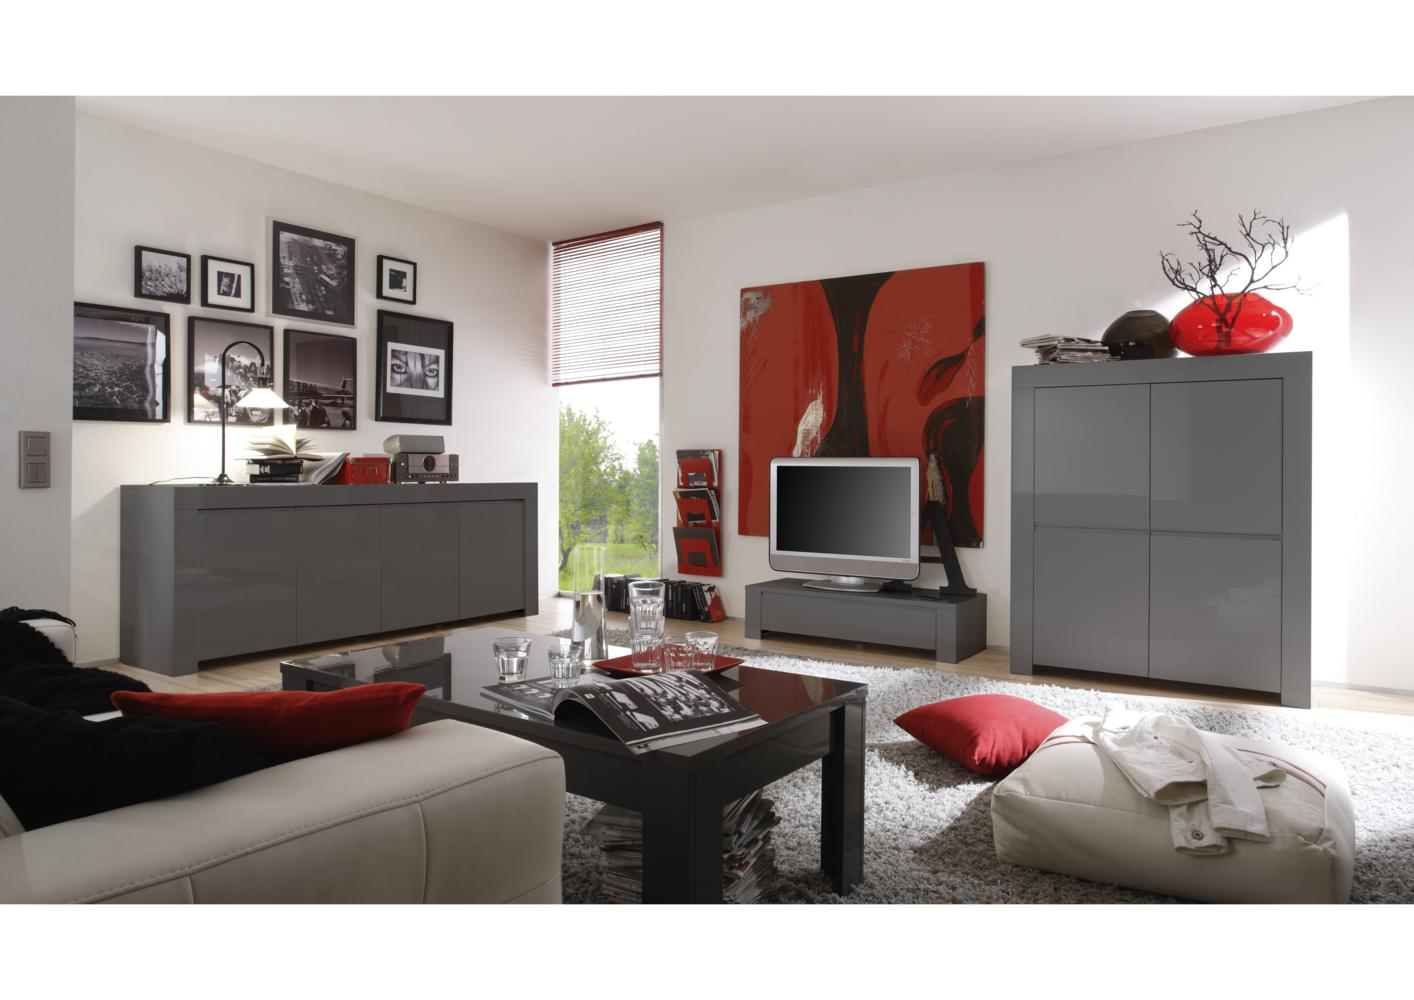 meuble bas tv blanc meuble tv bas blanc meuble tv bas blanc laque meuble tv bas laque blanc. Black Bedroom Furniture Sets. Home Design Ideas